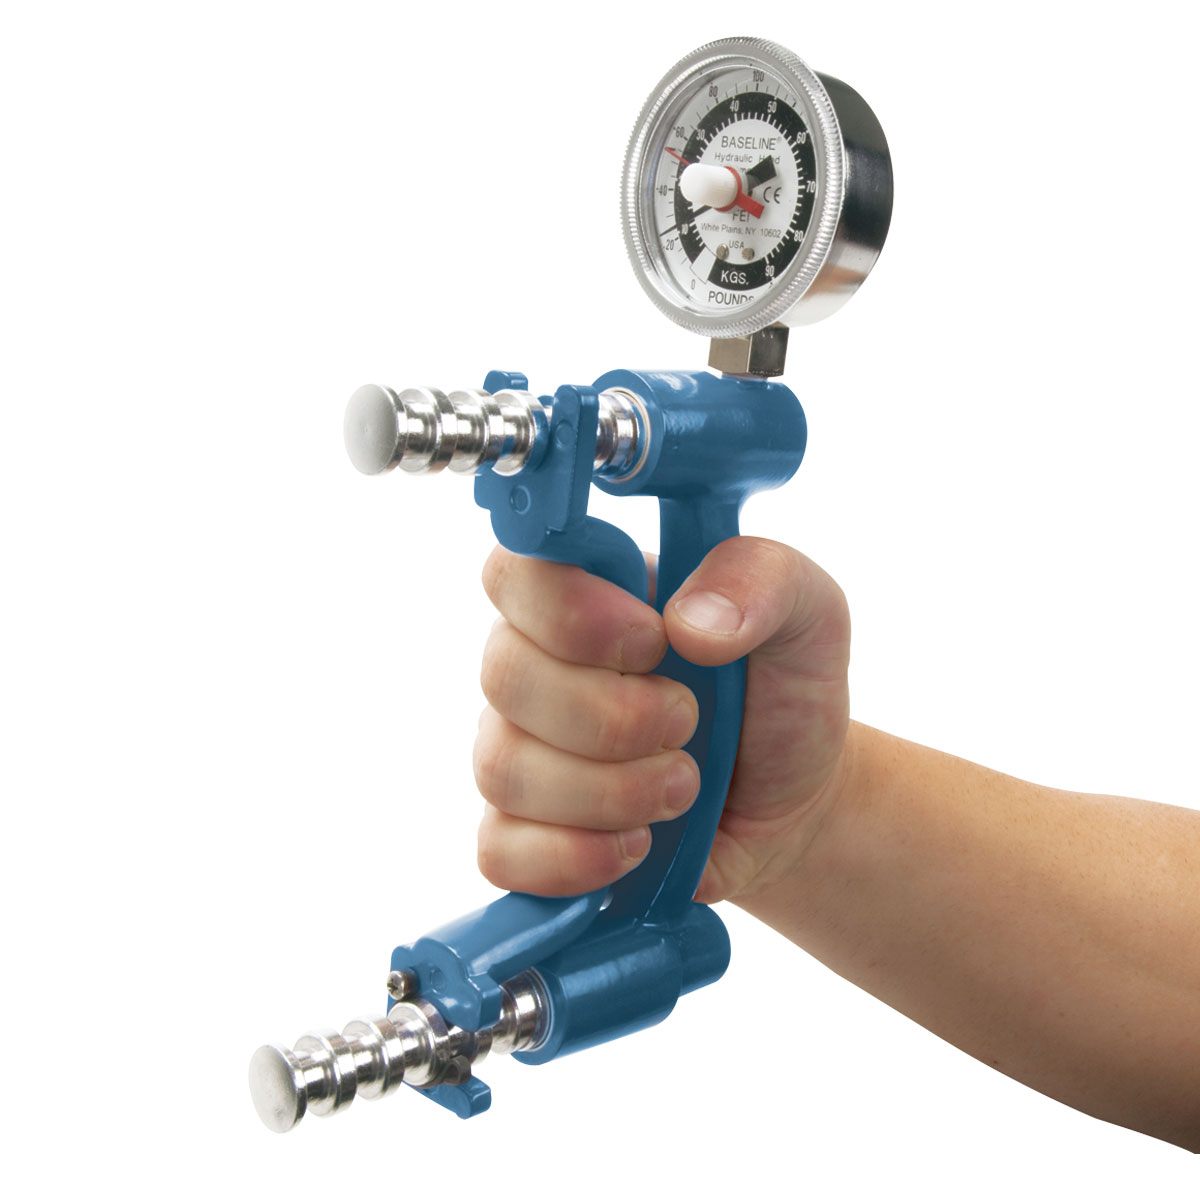 Hand Dynamometer Test : Hand dynamometer baseline grip strength